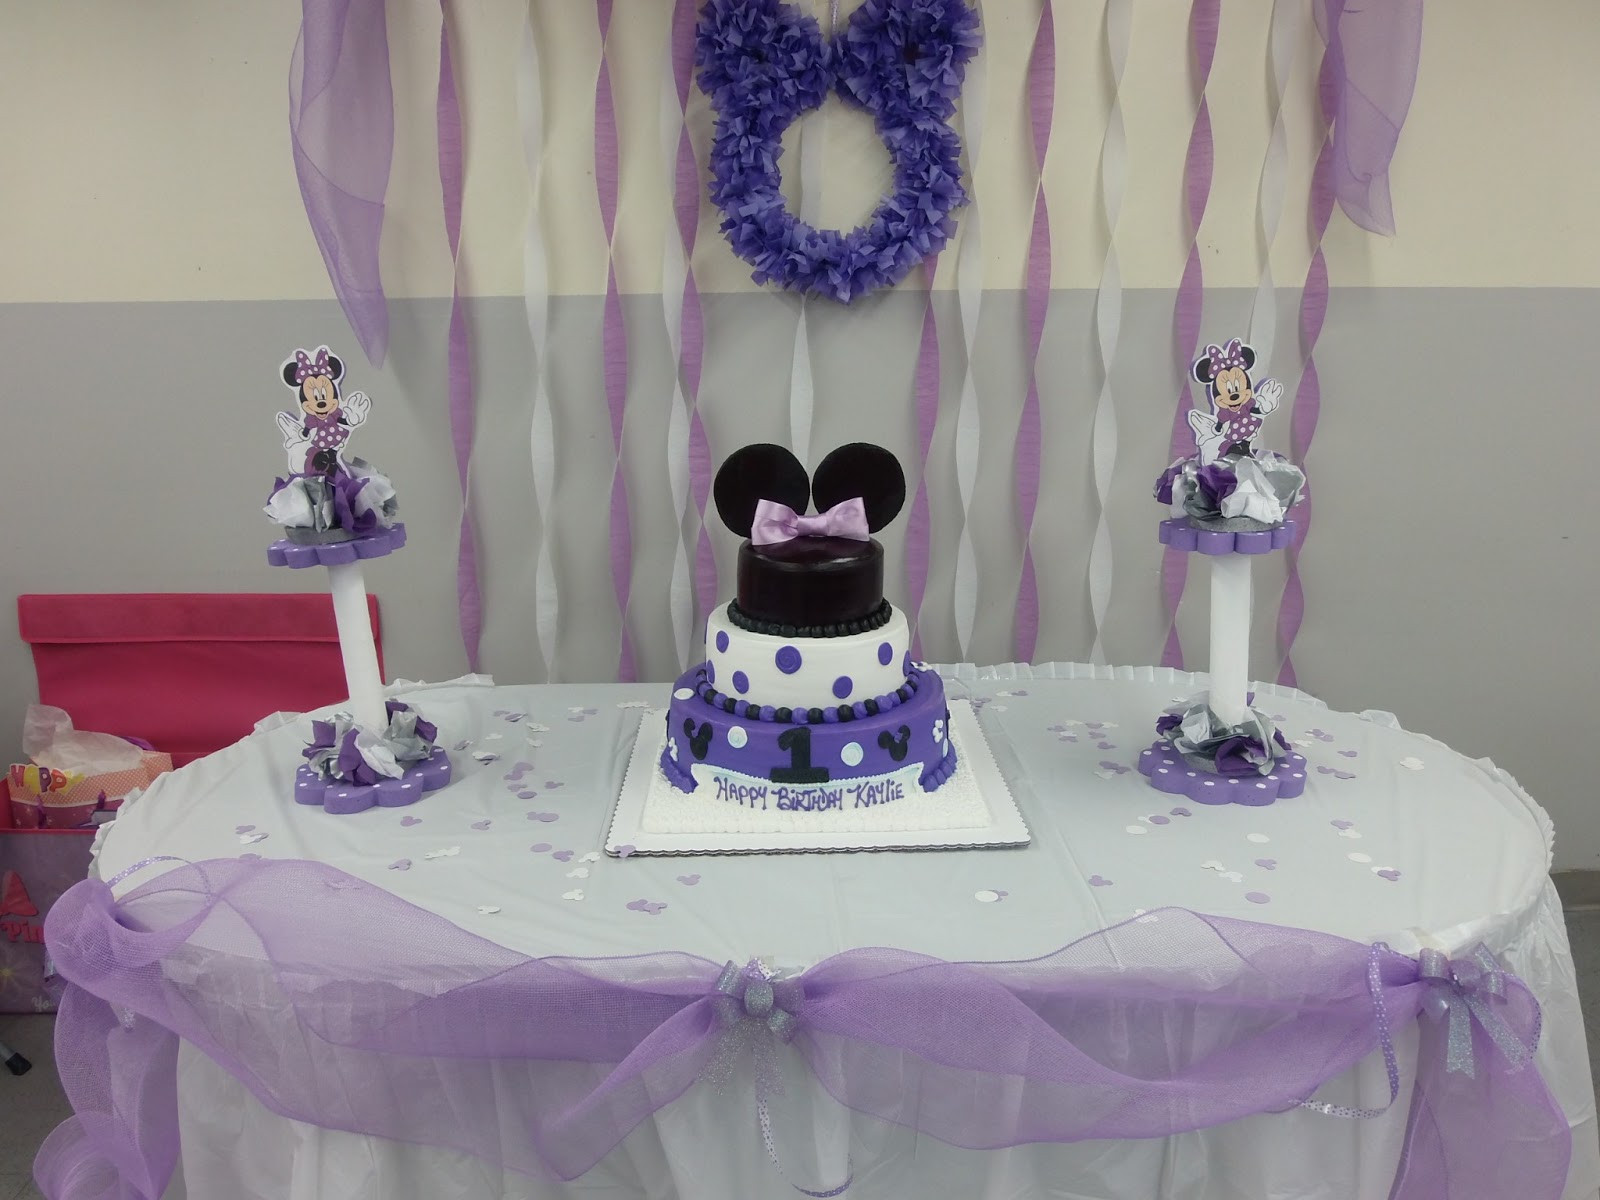 Best ideas about DIY Minnie Mouse Decorations . Save or Pin Living life backwards DIY Minnie Mouse decorations Now.